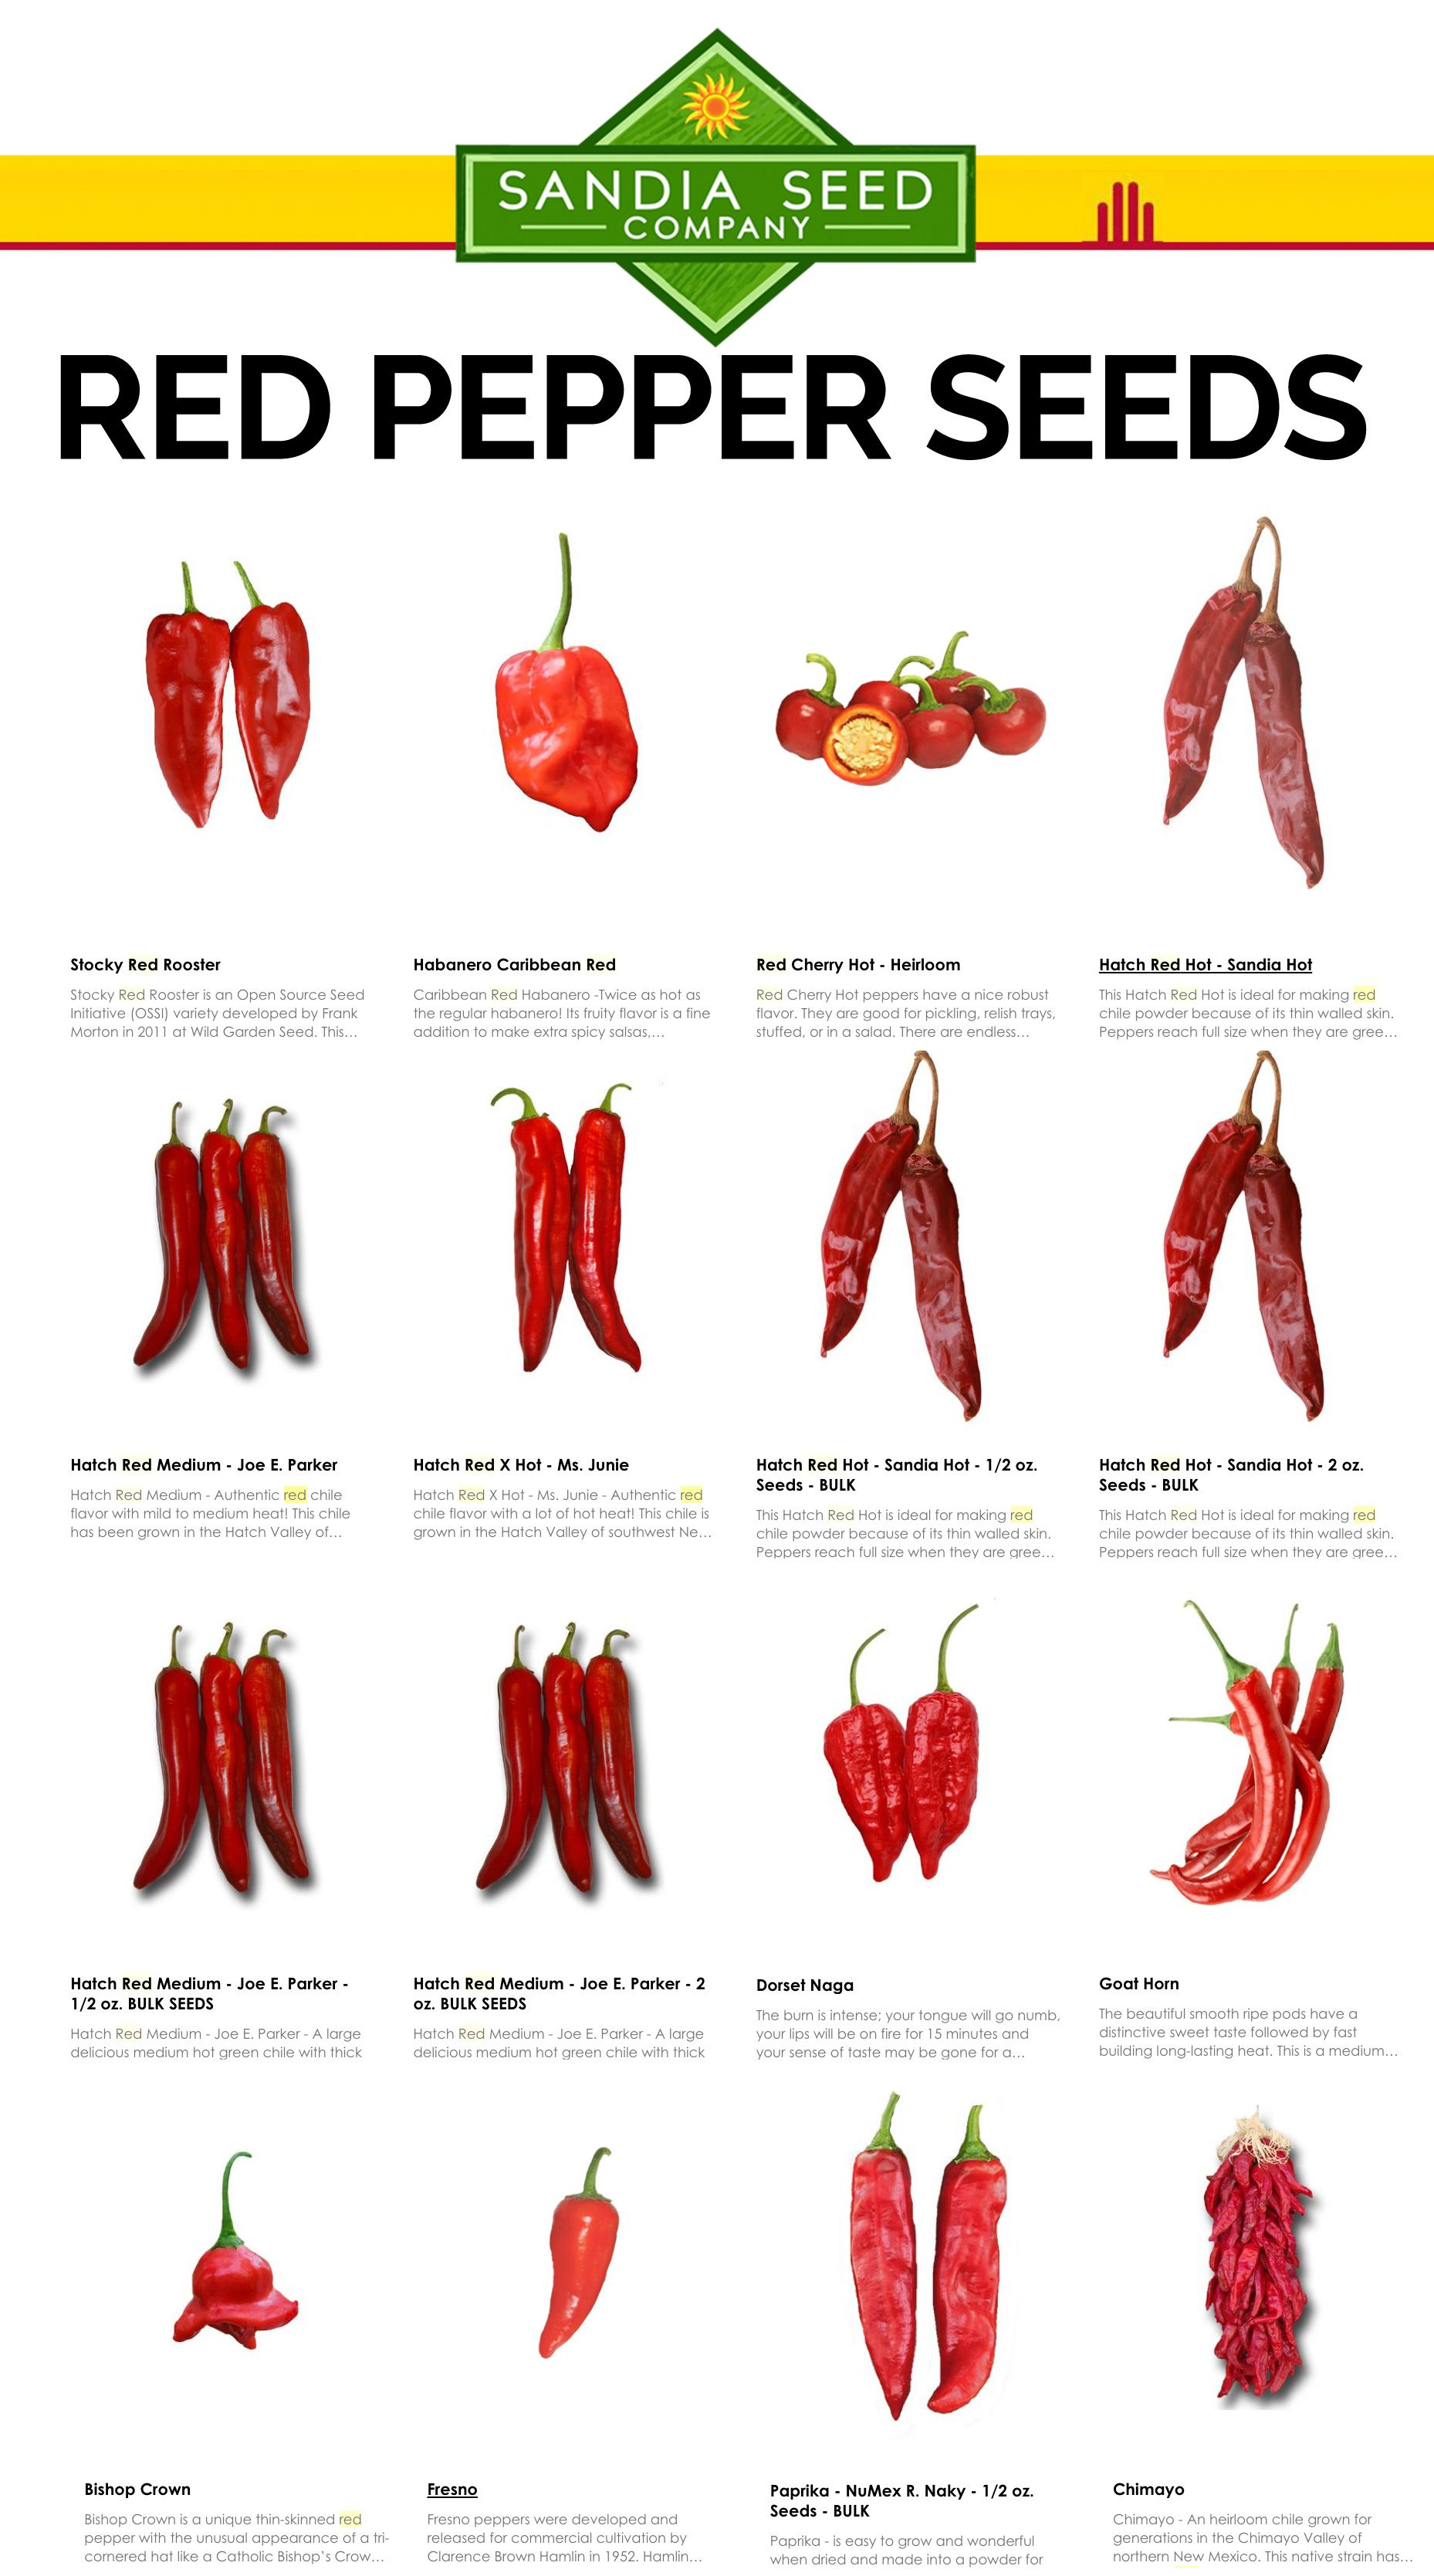 Best Salt Substitute: Hot Pepper Flakes - try using any of these red hot peppers!